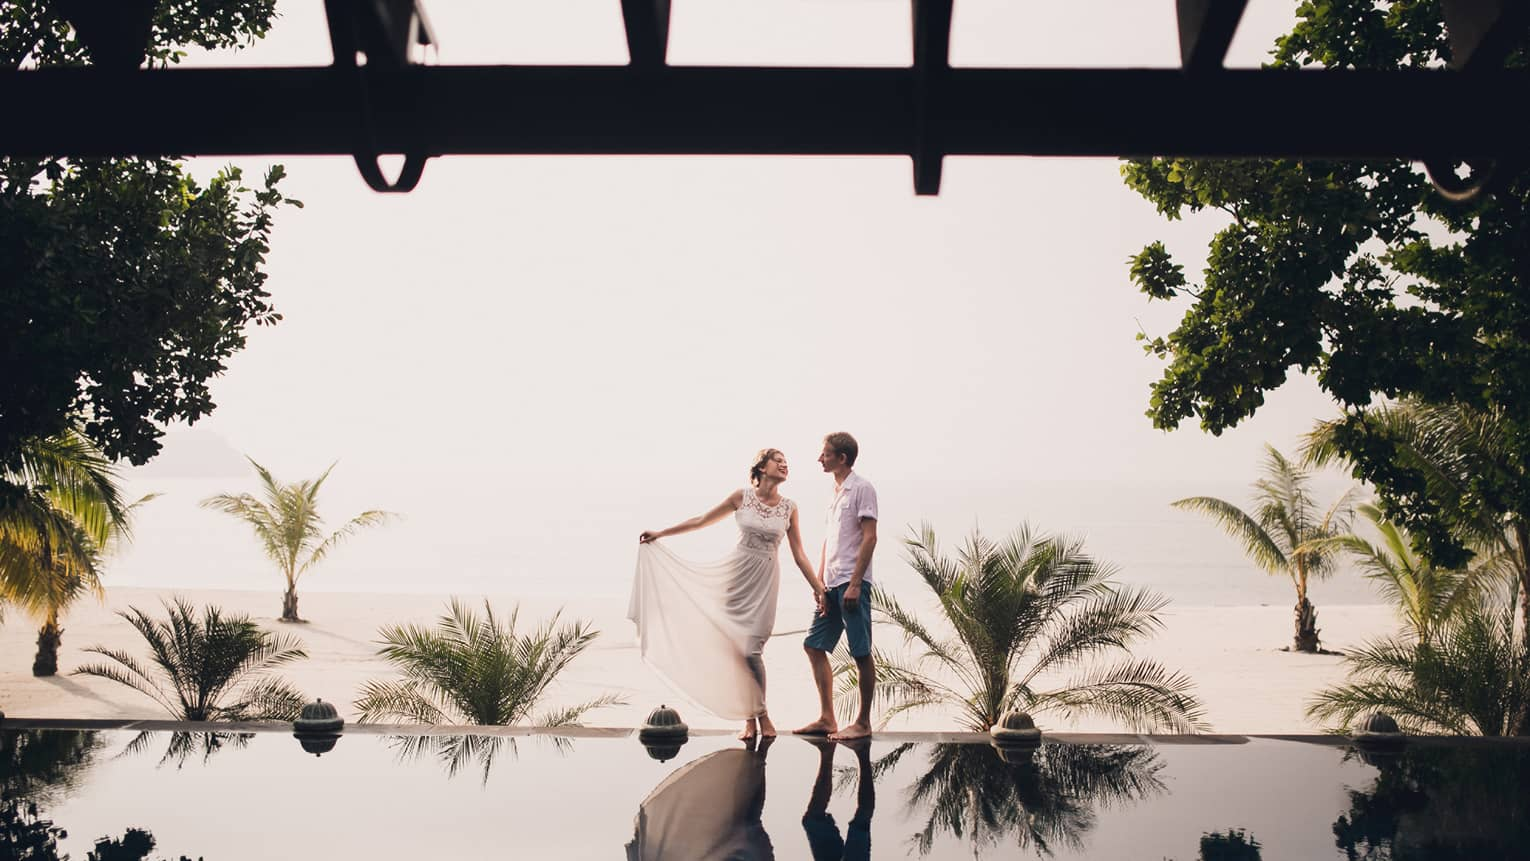 Woman in white lace dress and man walk along edge of reflection pool